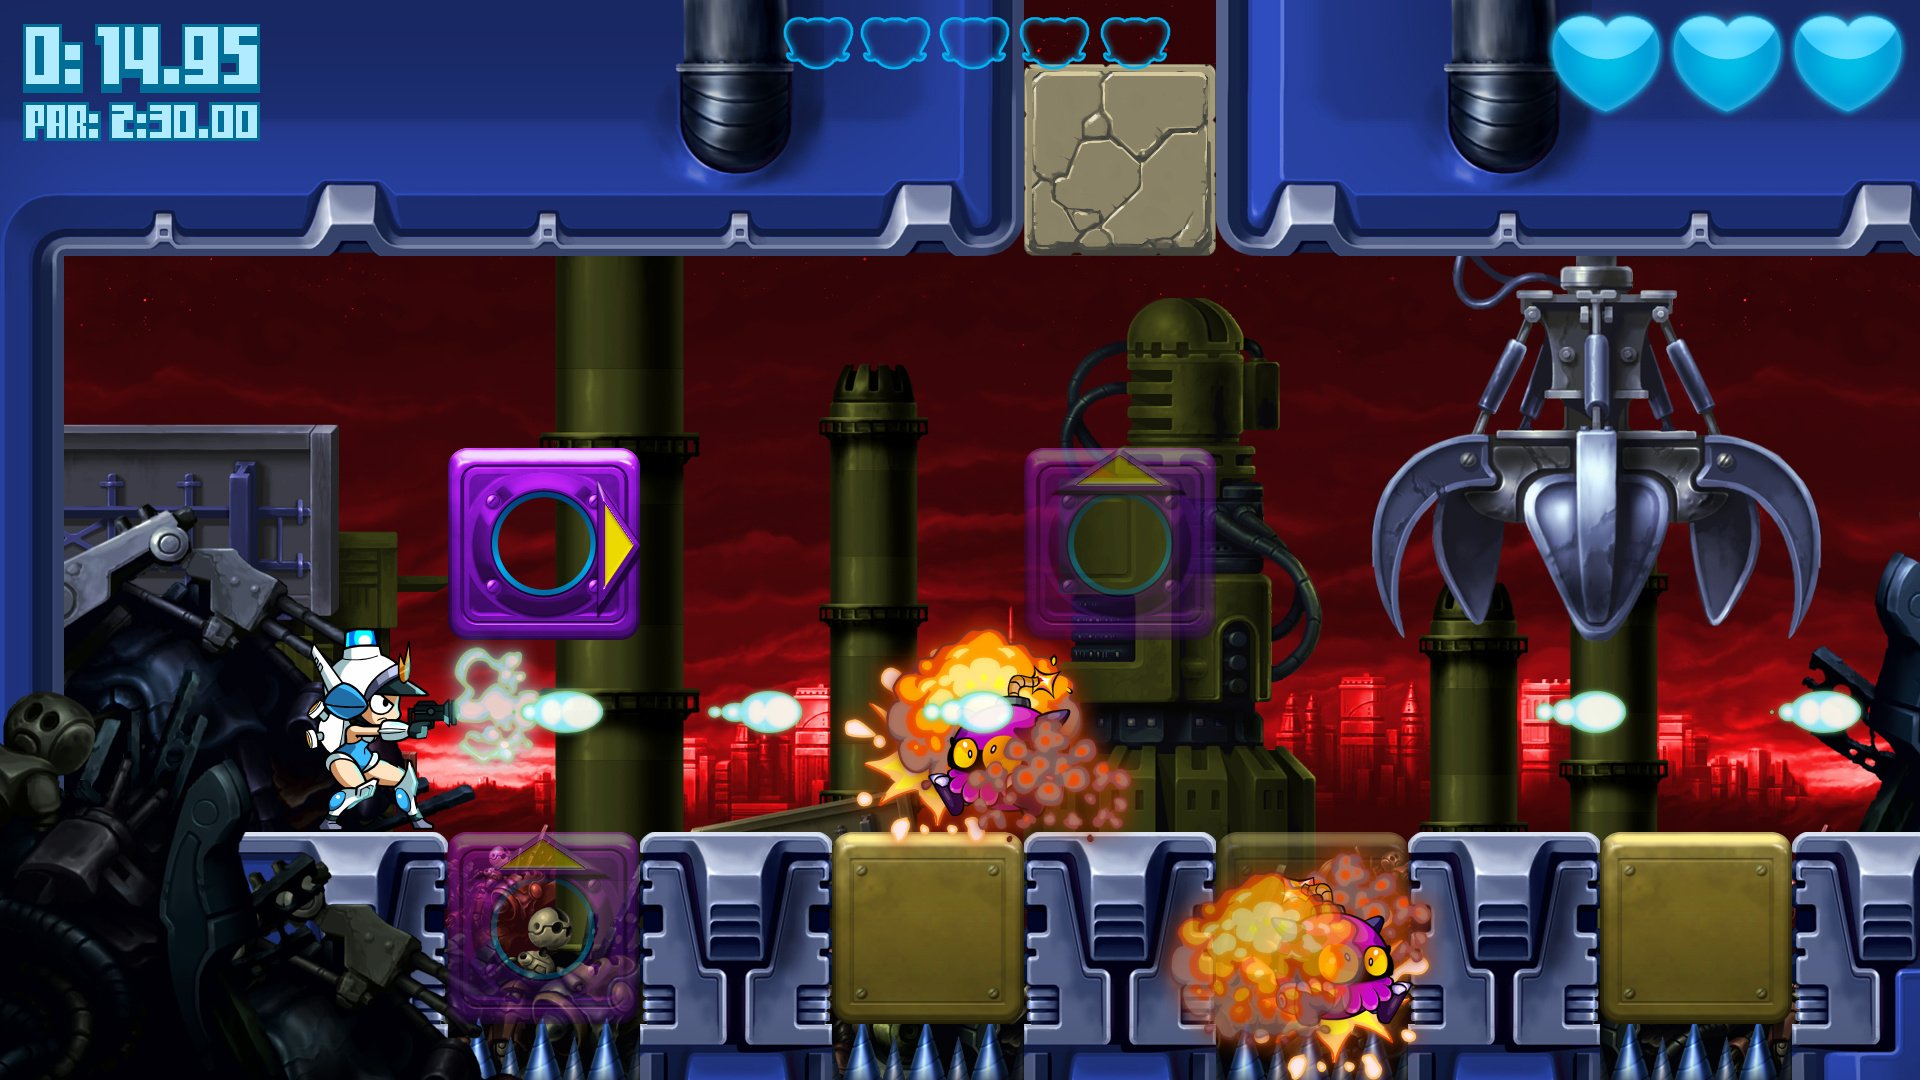 Co Op Advertising >> Mighty Switch Force: Hyper Drive Edition (Wii U eShop) Screenshots